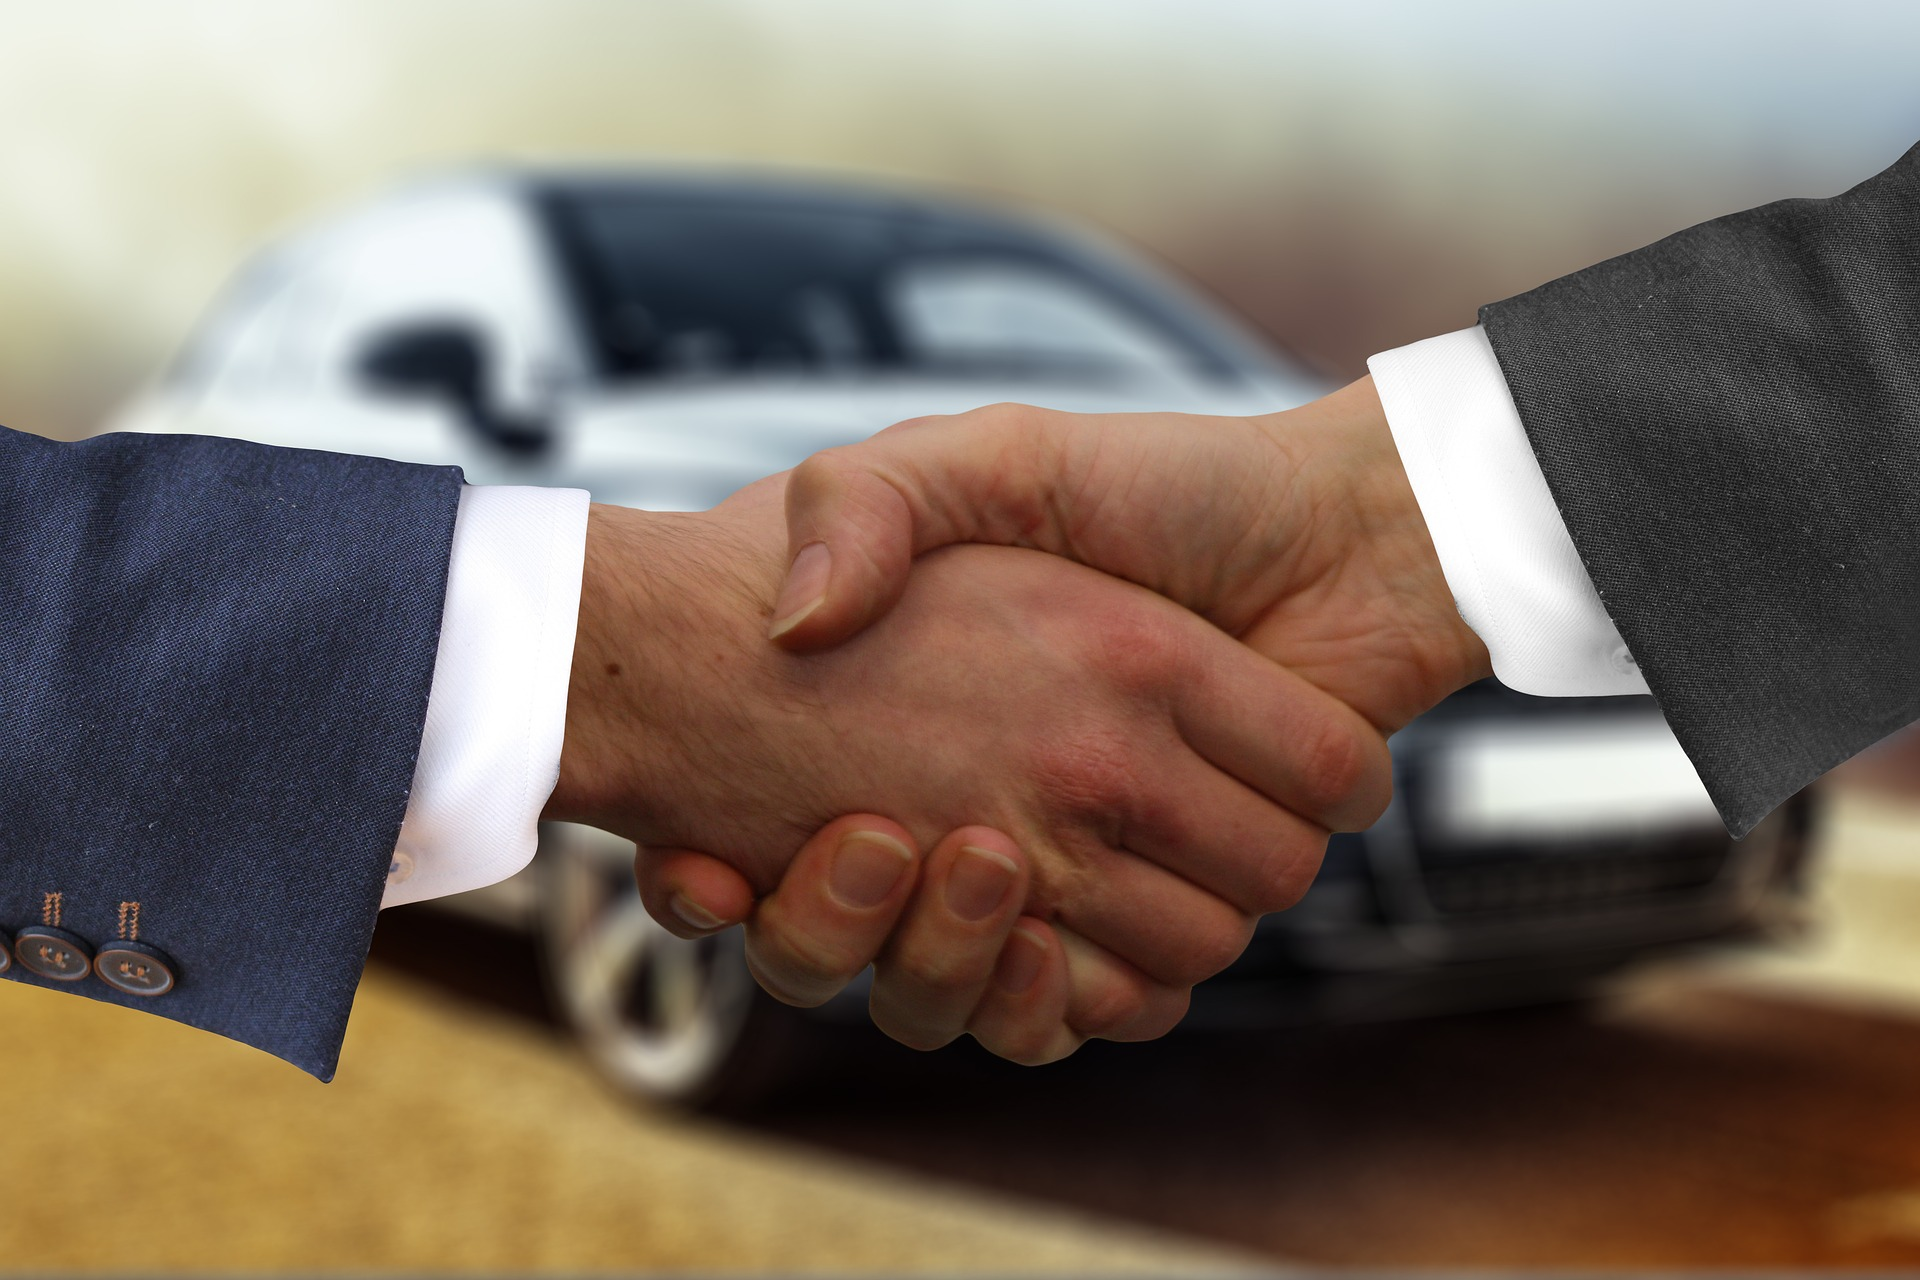 cash for scrap cars caboolture, Cash For Cars Caboolture: Drive more Environment Friendly